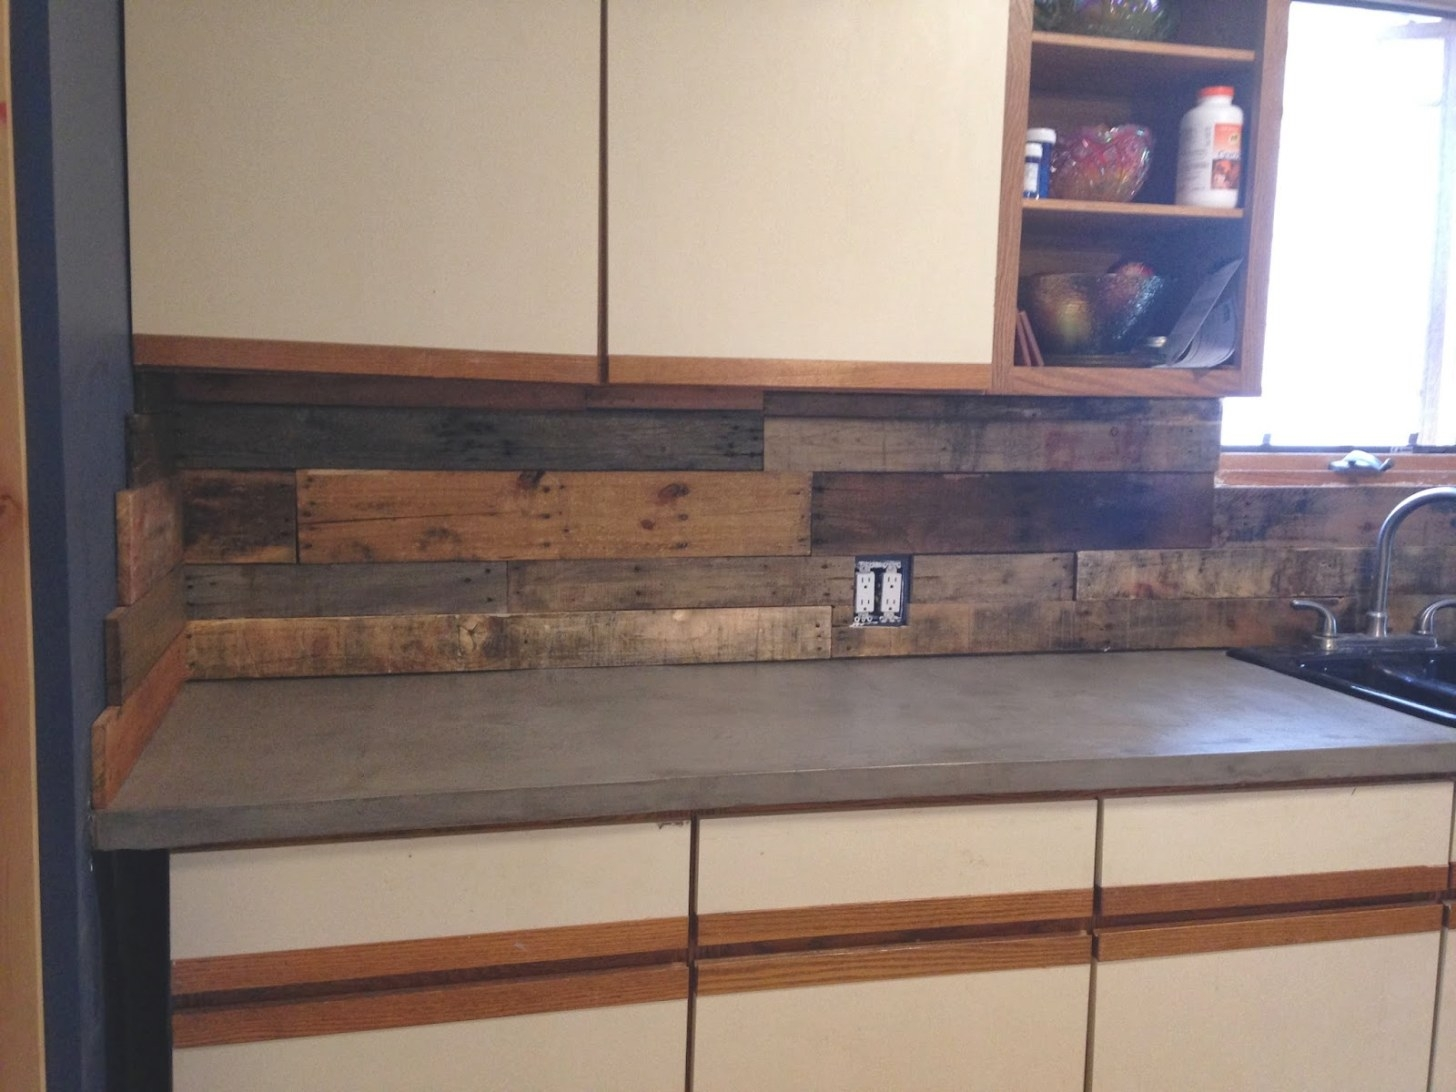 Nailed It Or Failed It: The Least Expensive Backsplash You pertaining to Do I Need Backsplash In Kitchen